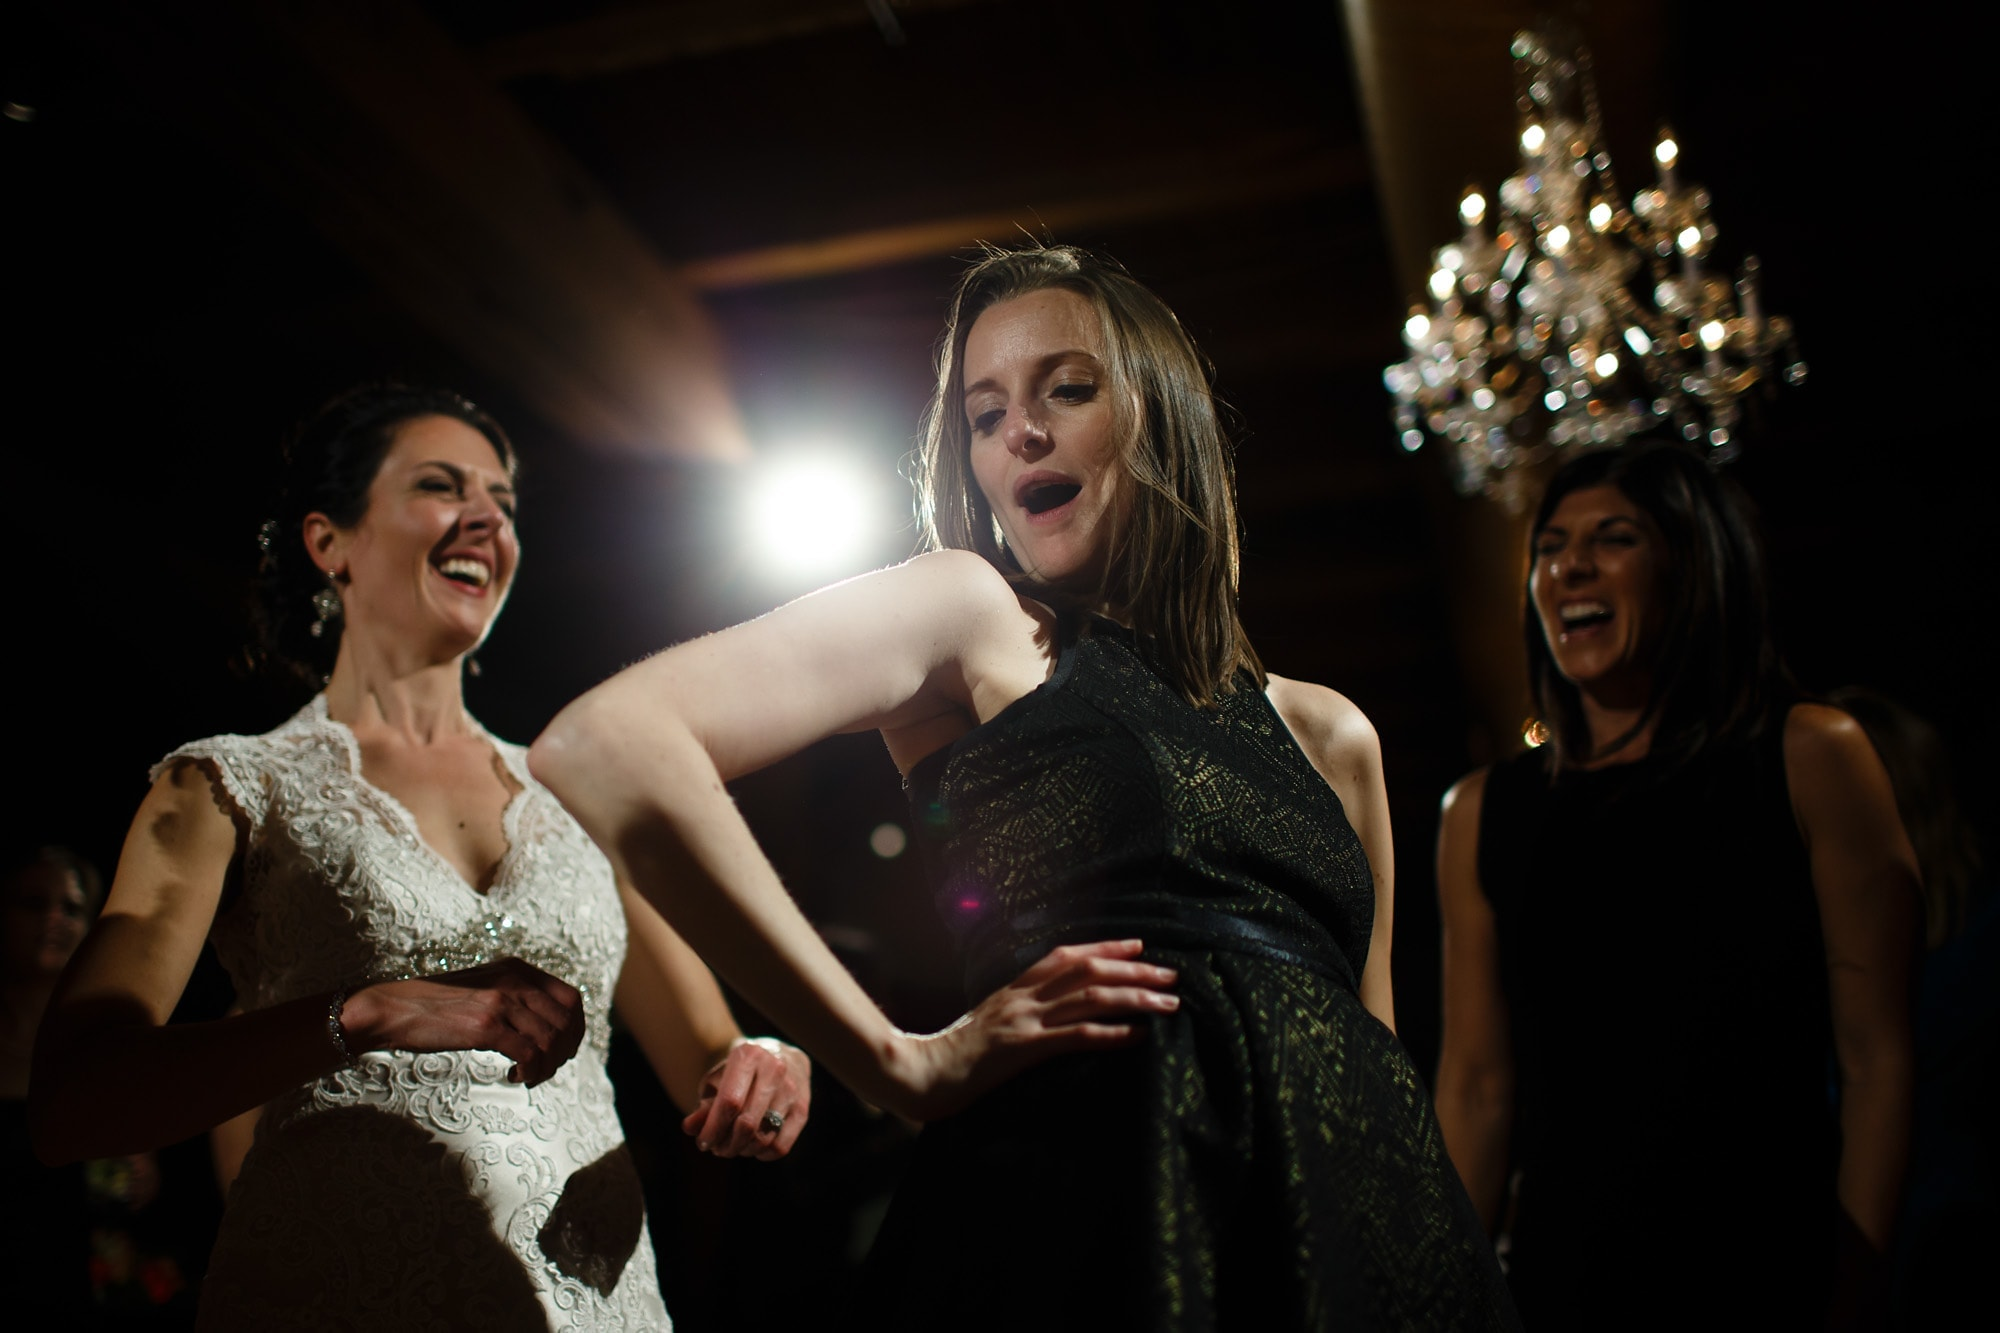 Guests dance during Brad and Christina's Bridgeport Art Center wedding